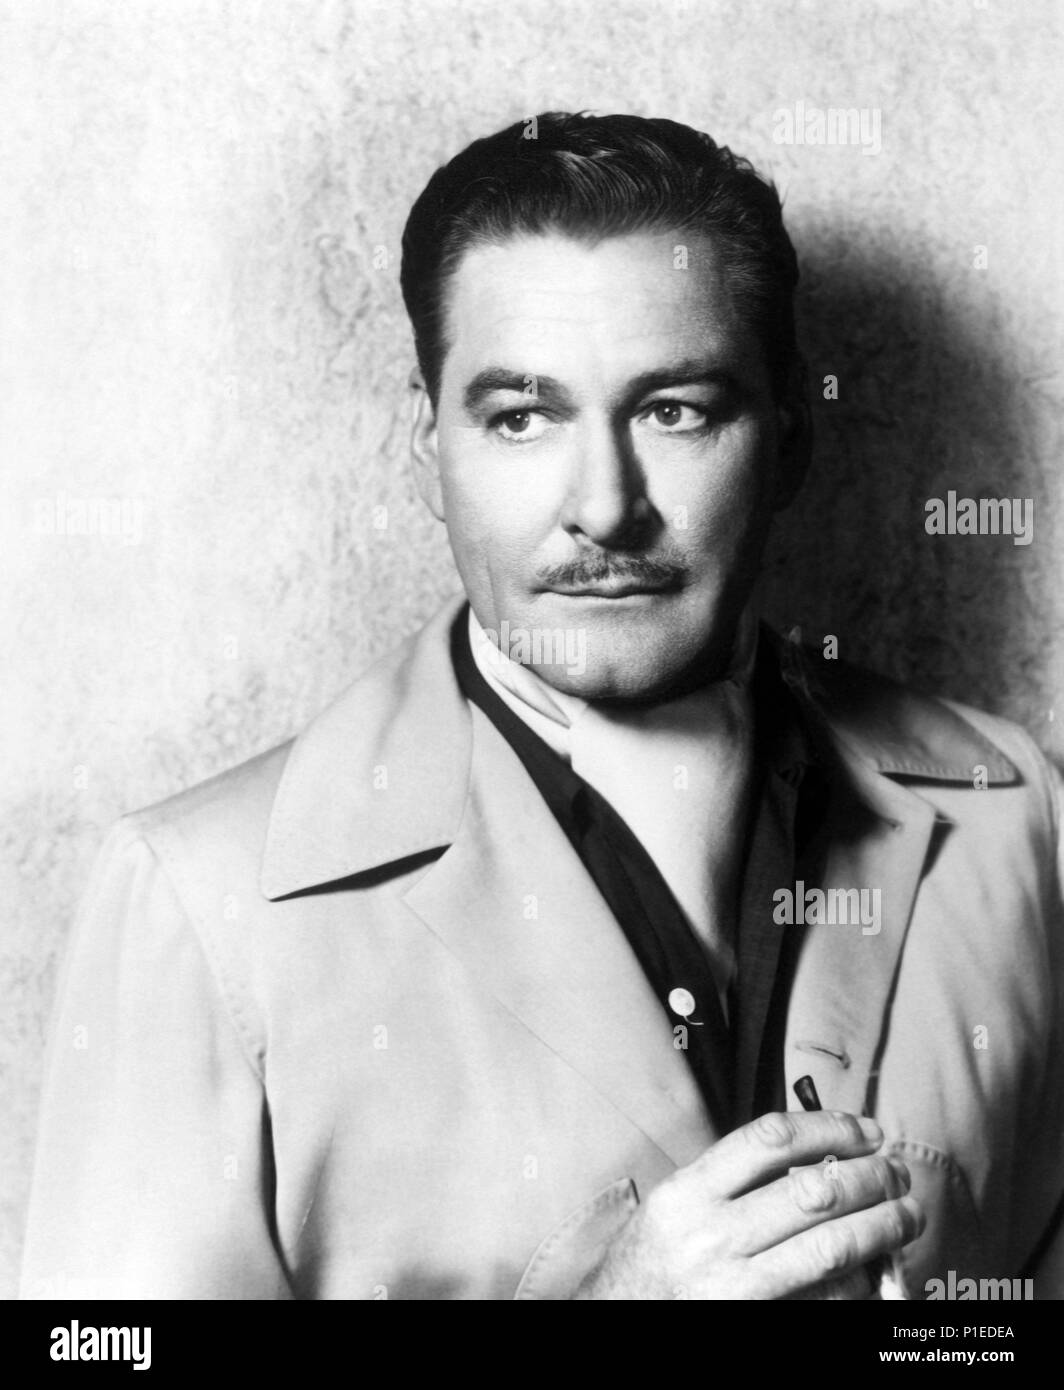 1957 Errol Flynn Stock Photos & 1957 Errol Flynn Stock